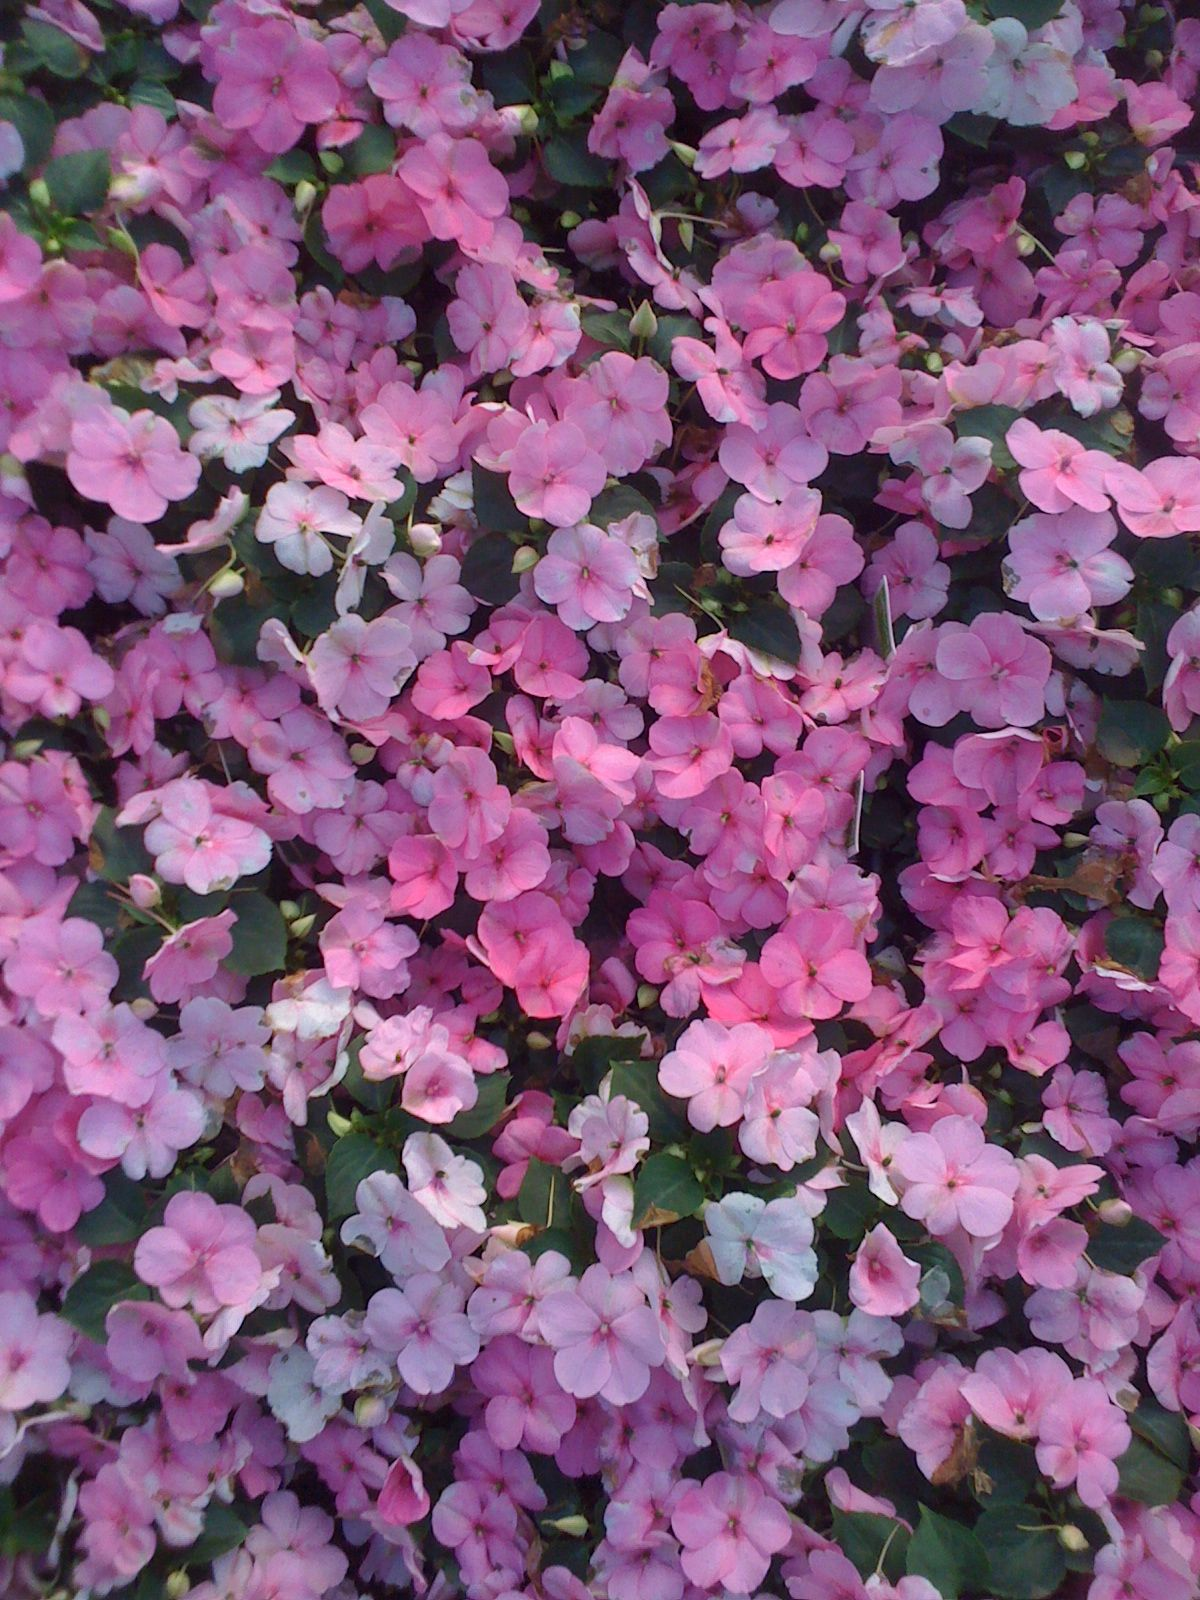 Impatiens Flowers I have had and liked